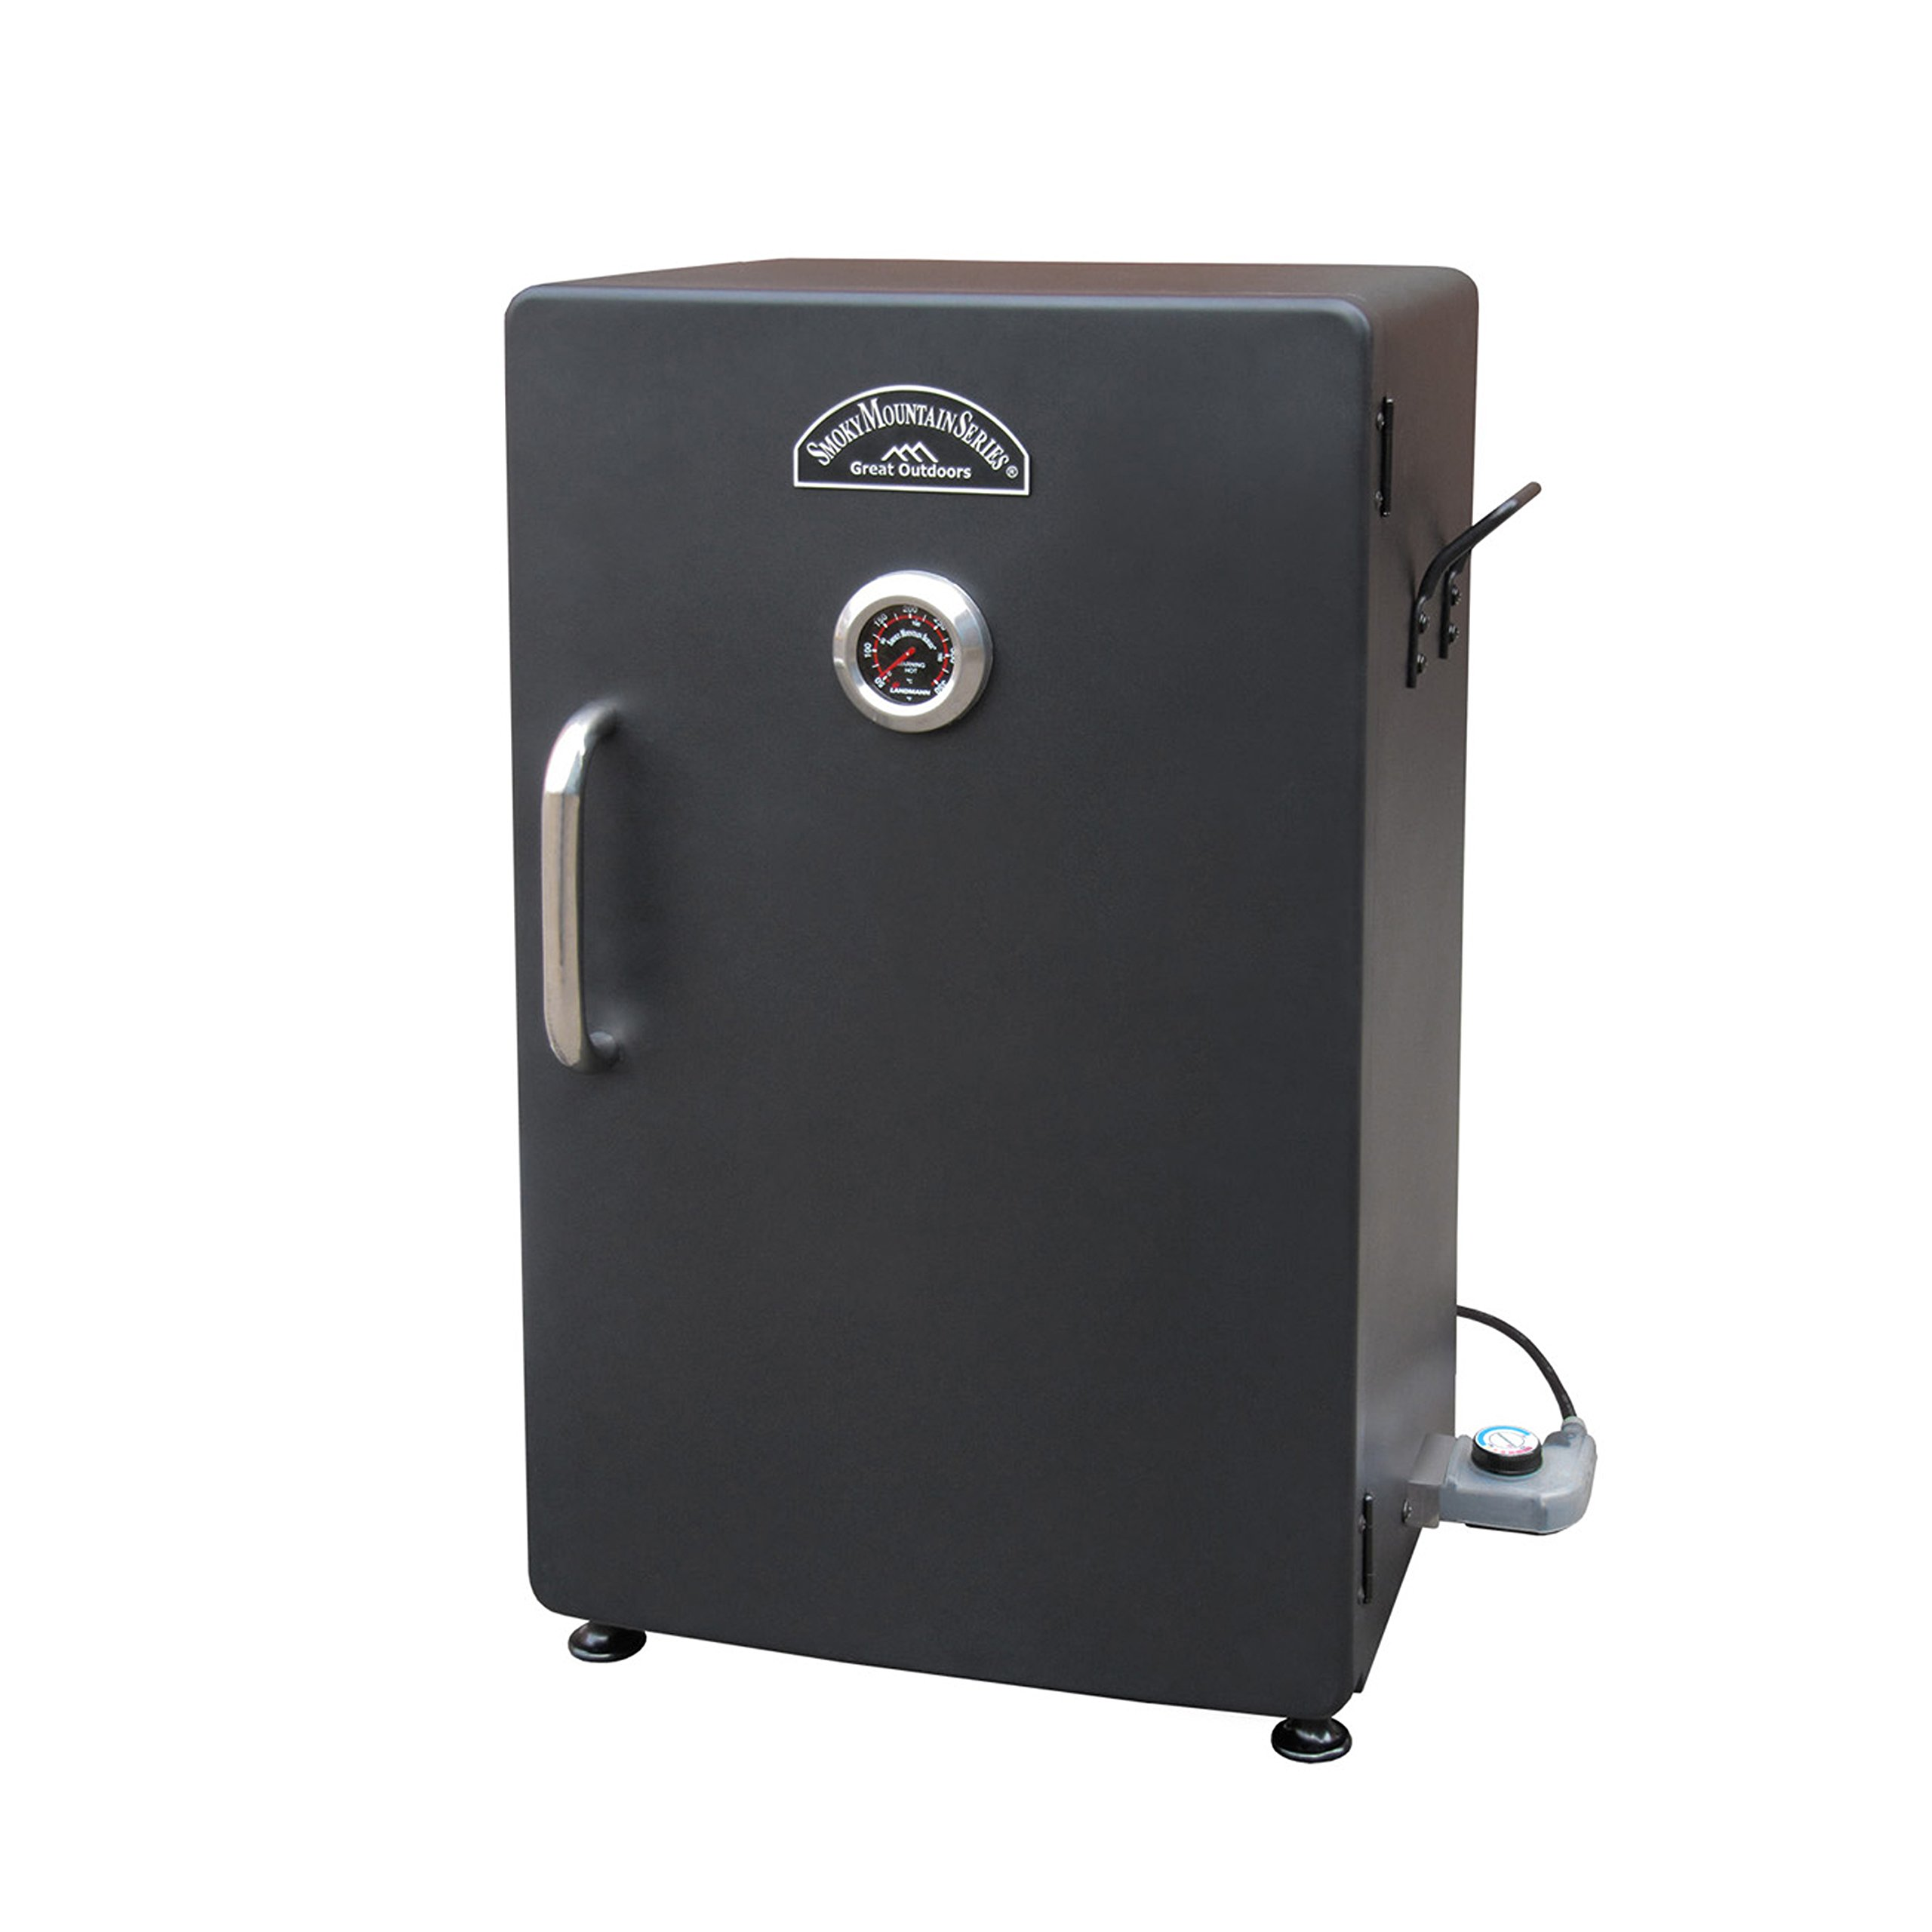 Landmann USA 32948 Smoky Mountain Electric Smoker, 26''